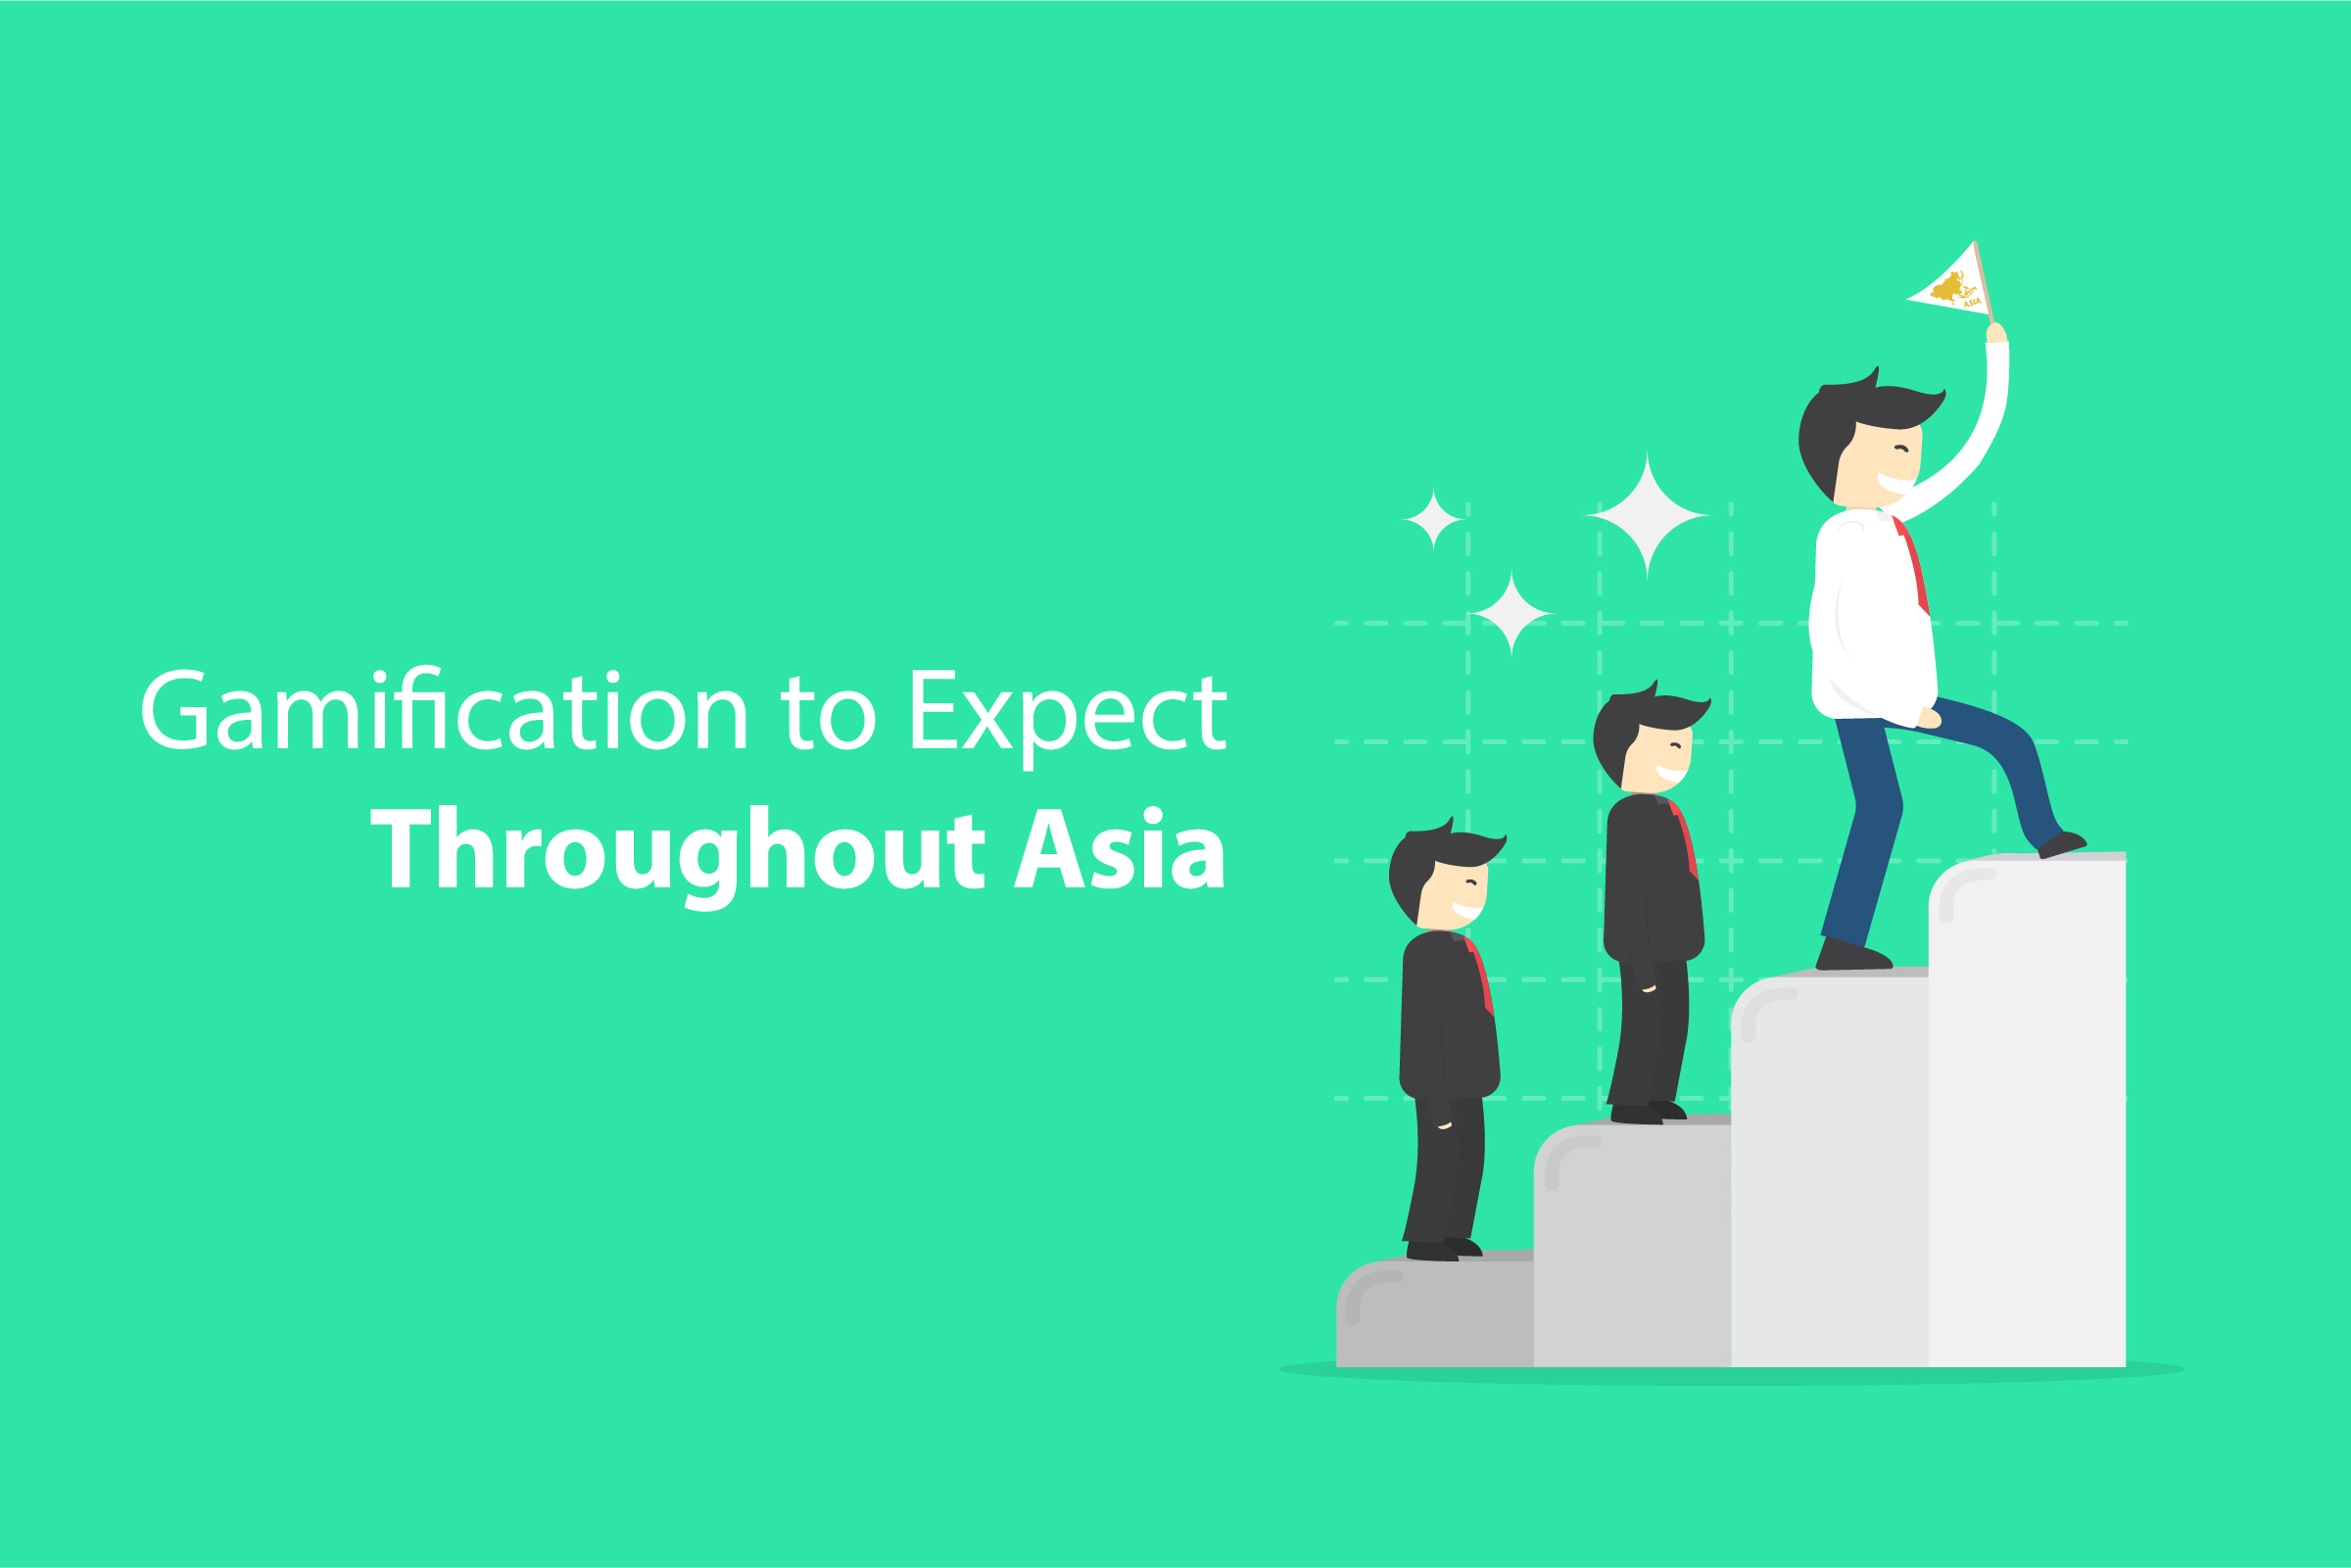 Why Asia Will Lead Gamification by 2020